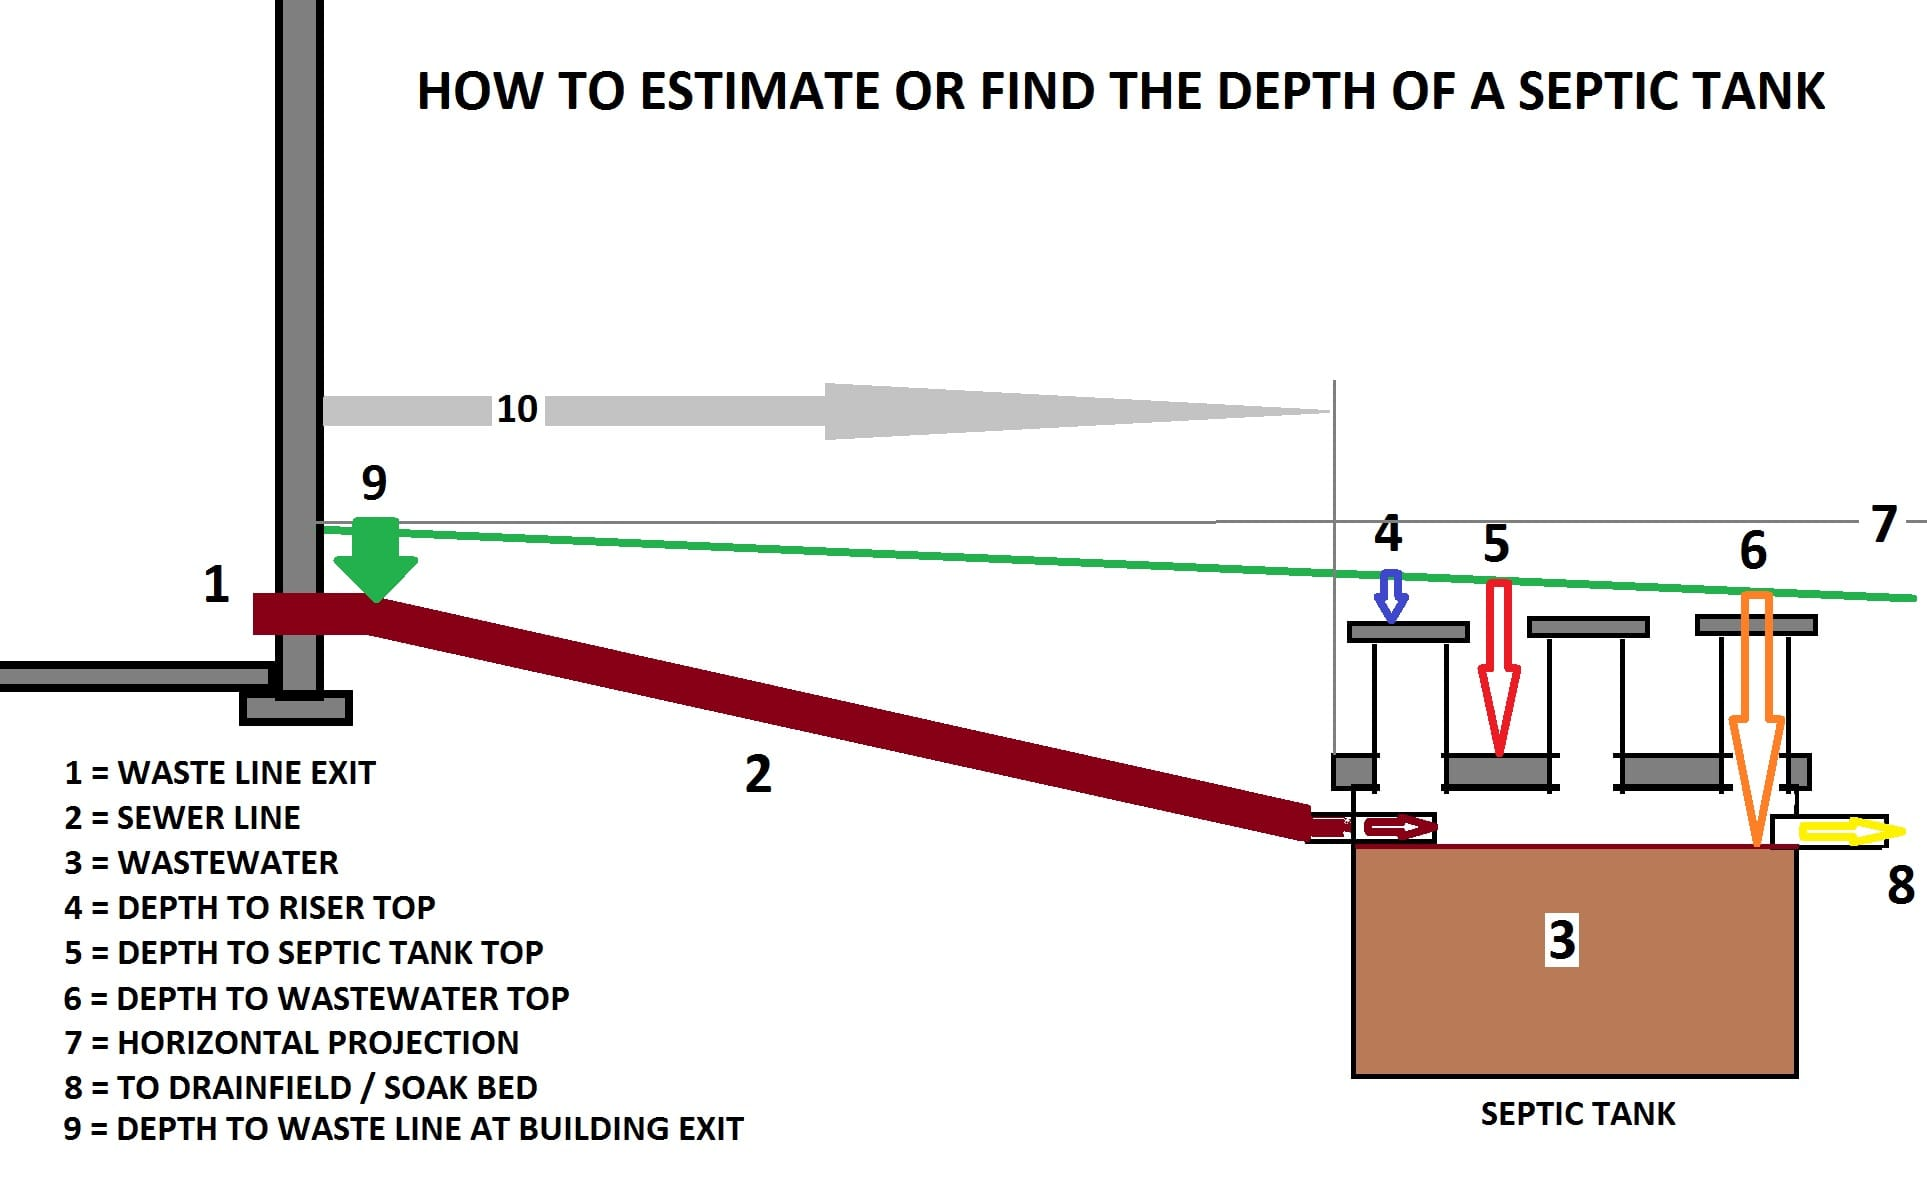 Septic Tank Design Depth - how deep should the septic tank